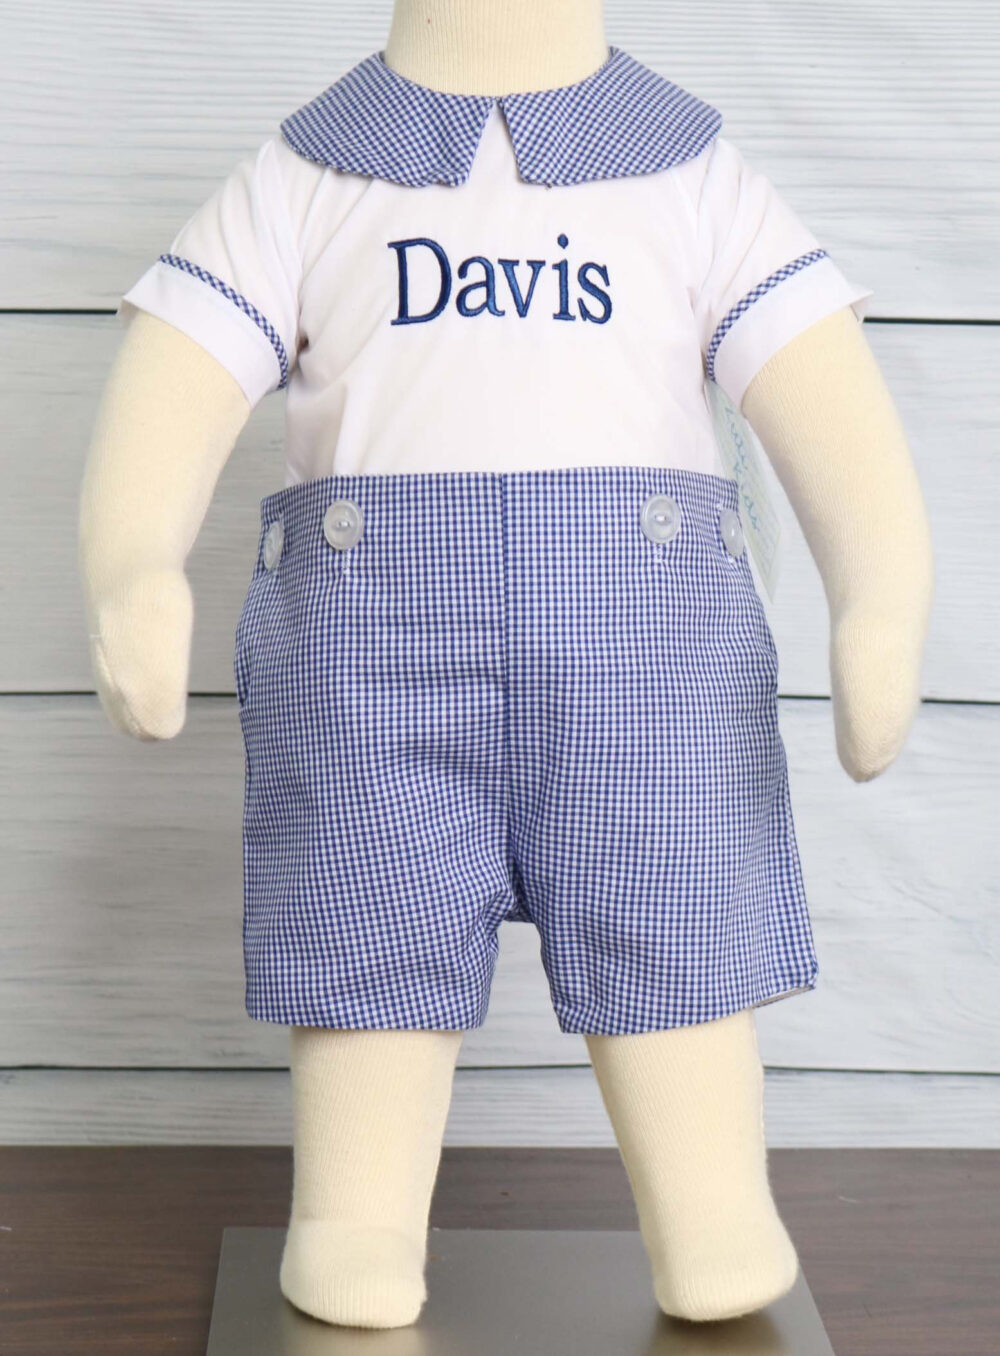 Ring Bearer Suit, Outfit, Boys Baby Wedding Boy 292075